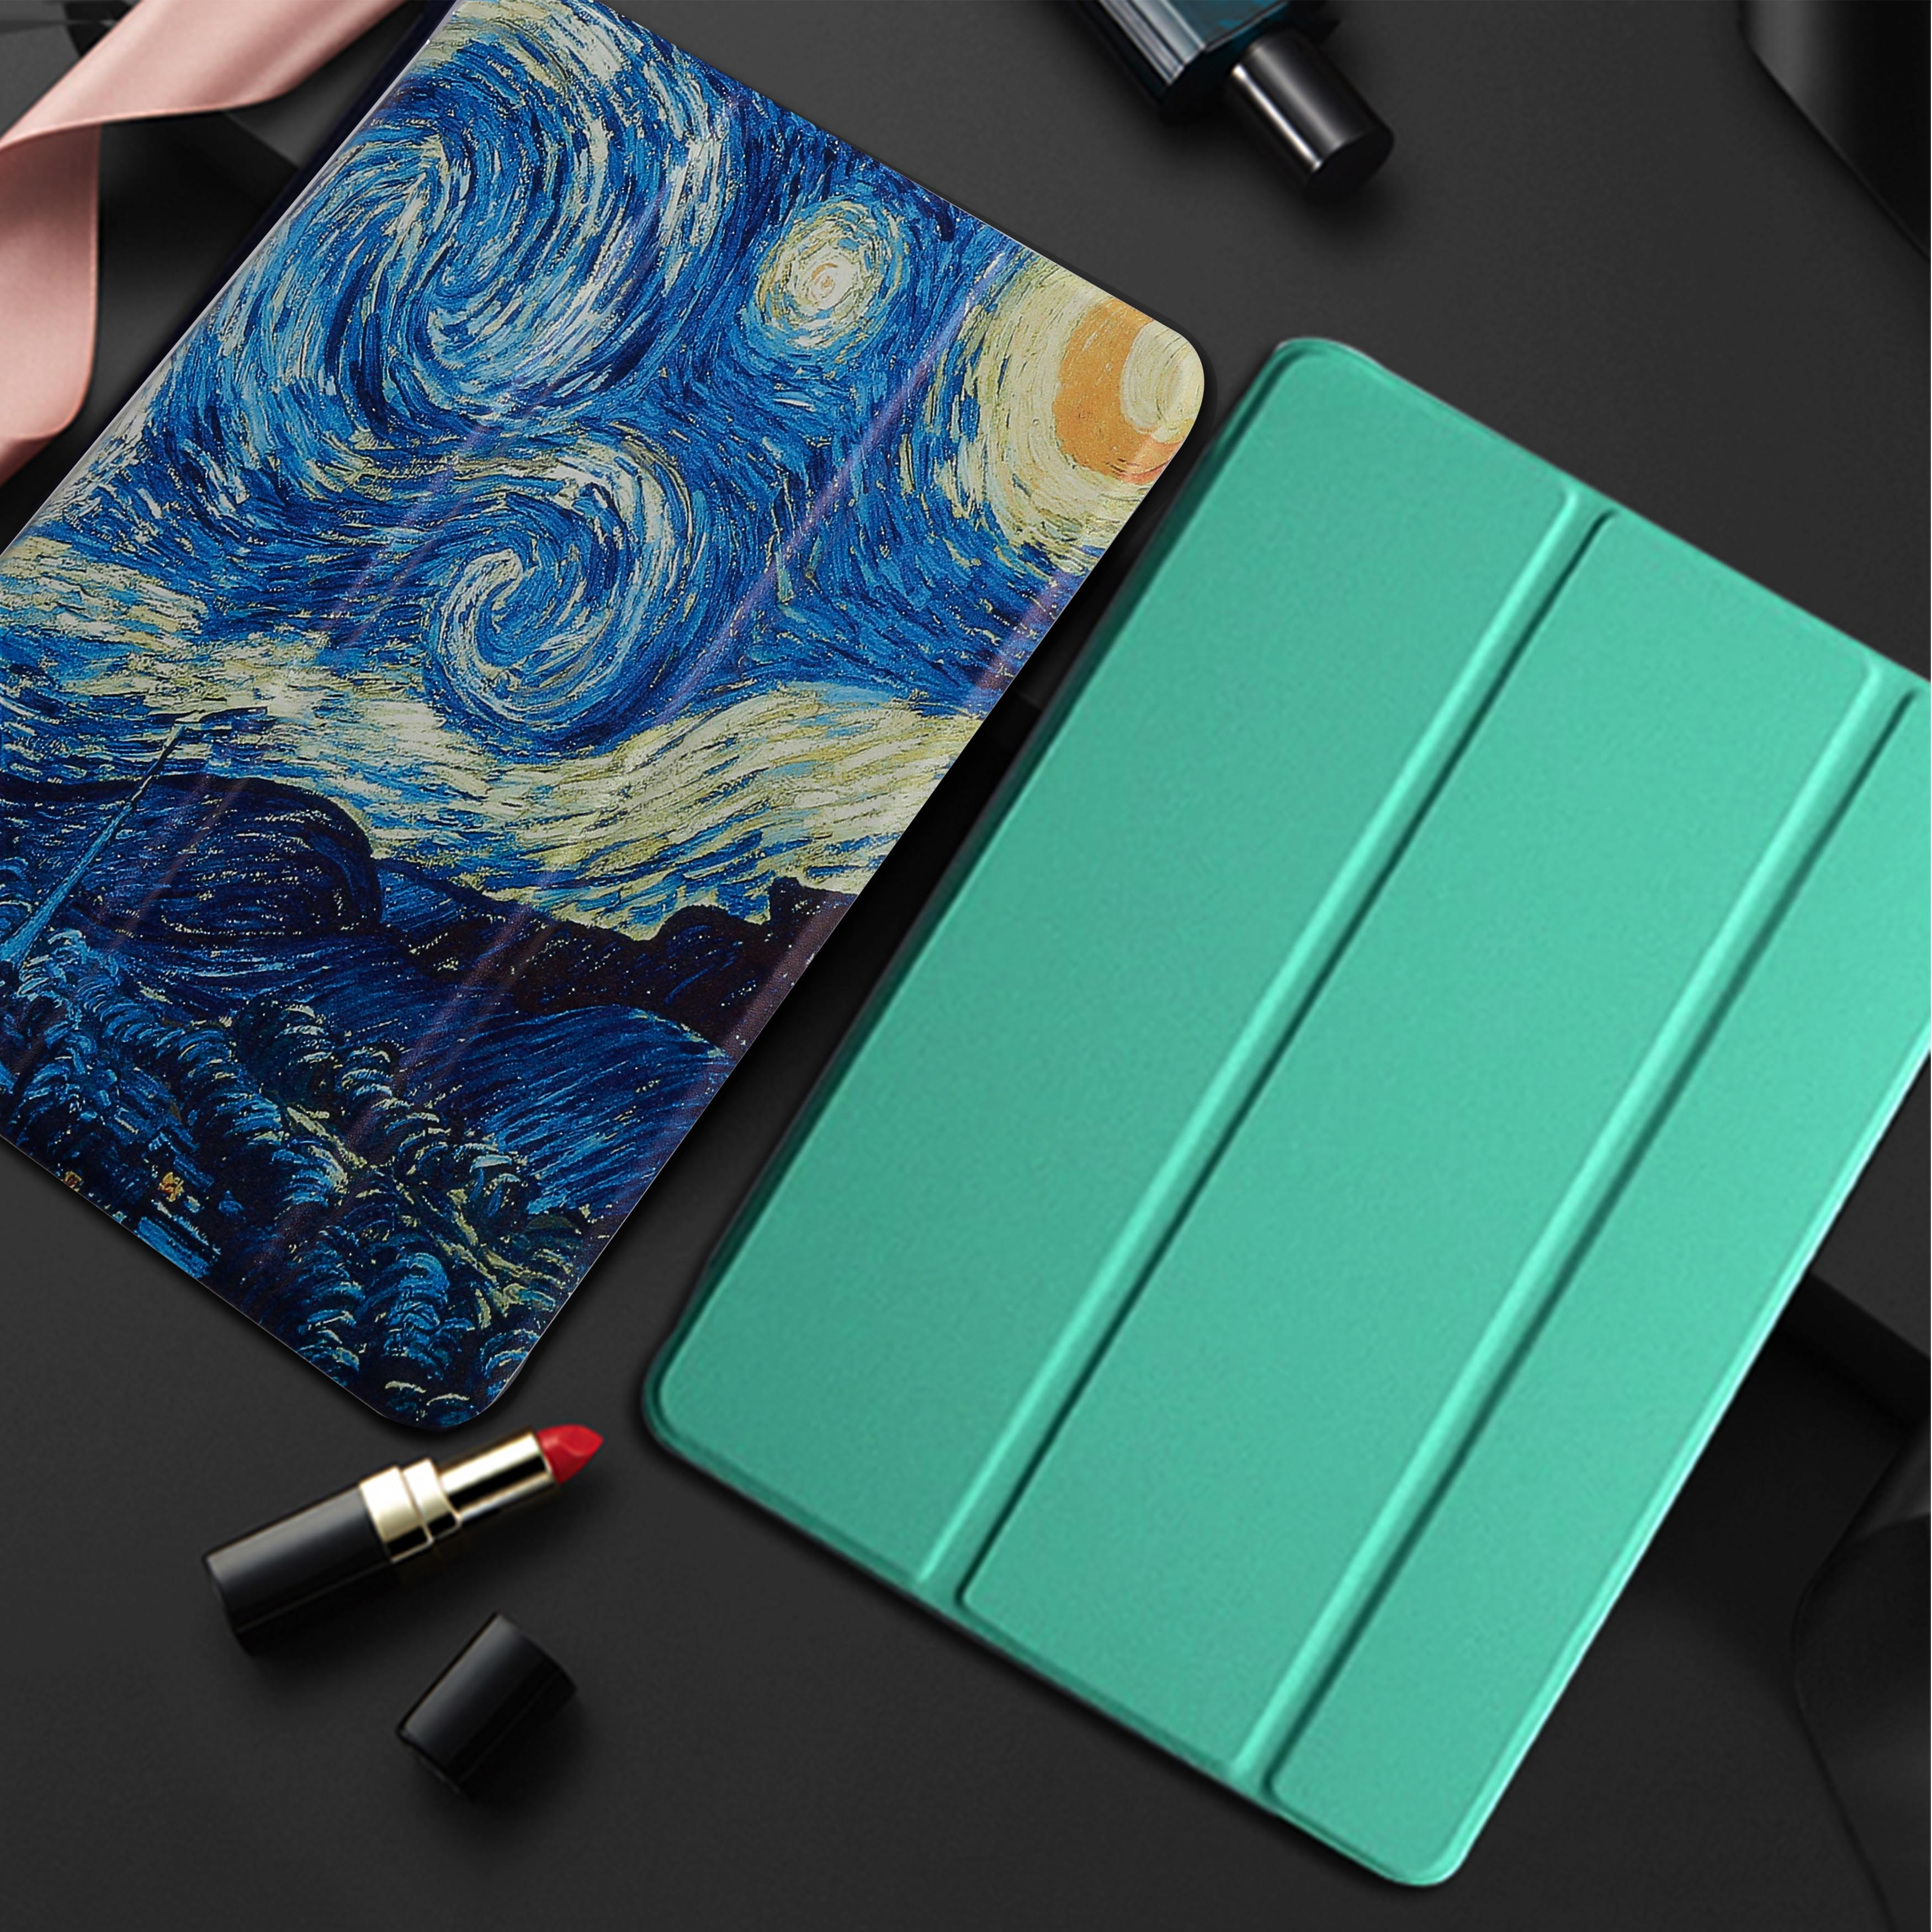 Tablet Case For Ipad Air 1 / 9.7 Inch NEW 2017 2018 Model A1822 A1823 A1893 A1954 Fundas PU Ultra Slim Wake Smart Cover Case